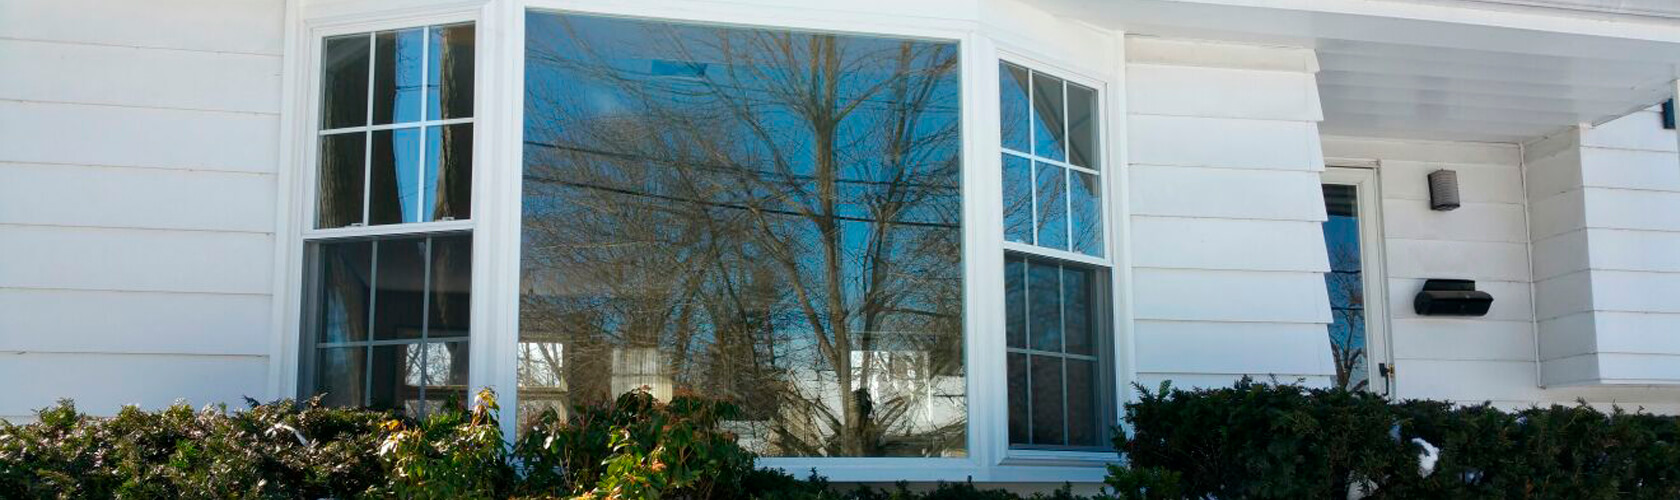 home windows nj has the windows for sale that your project needs - Home Windows For Sale